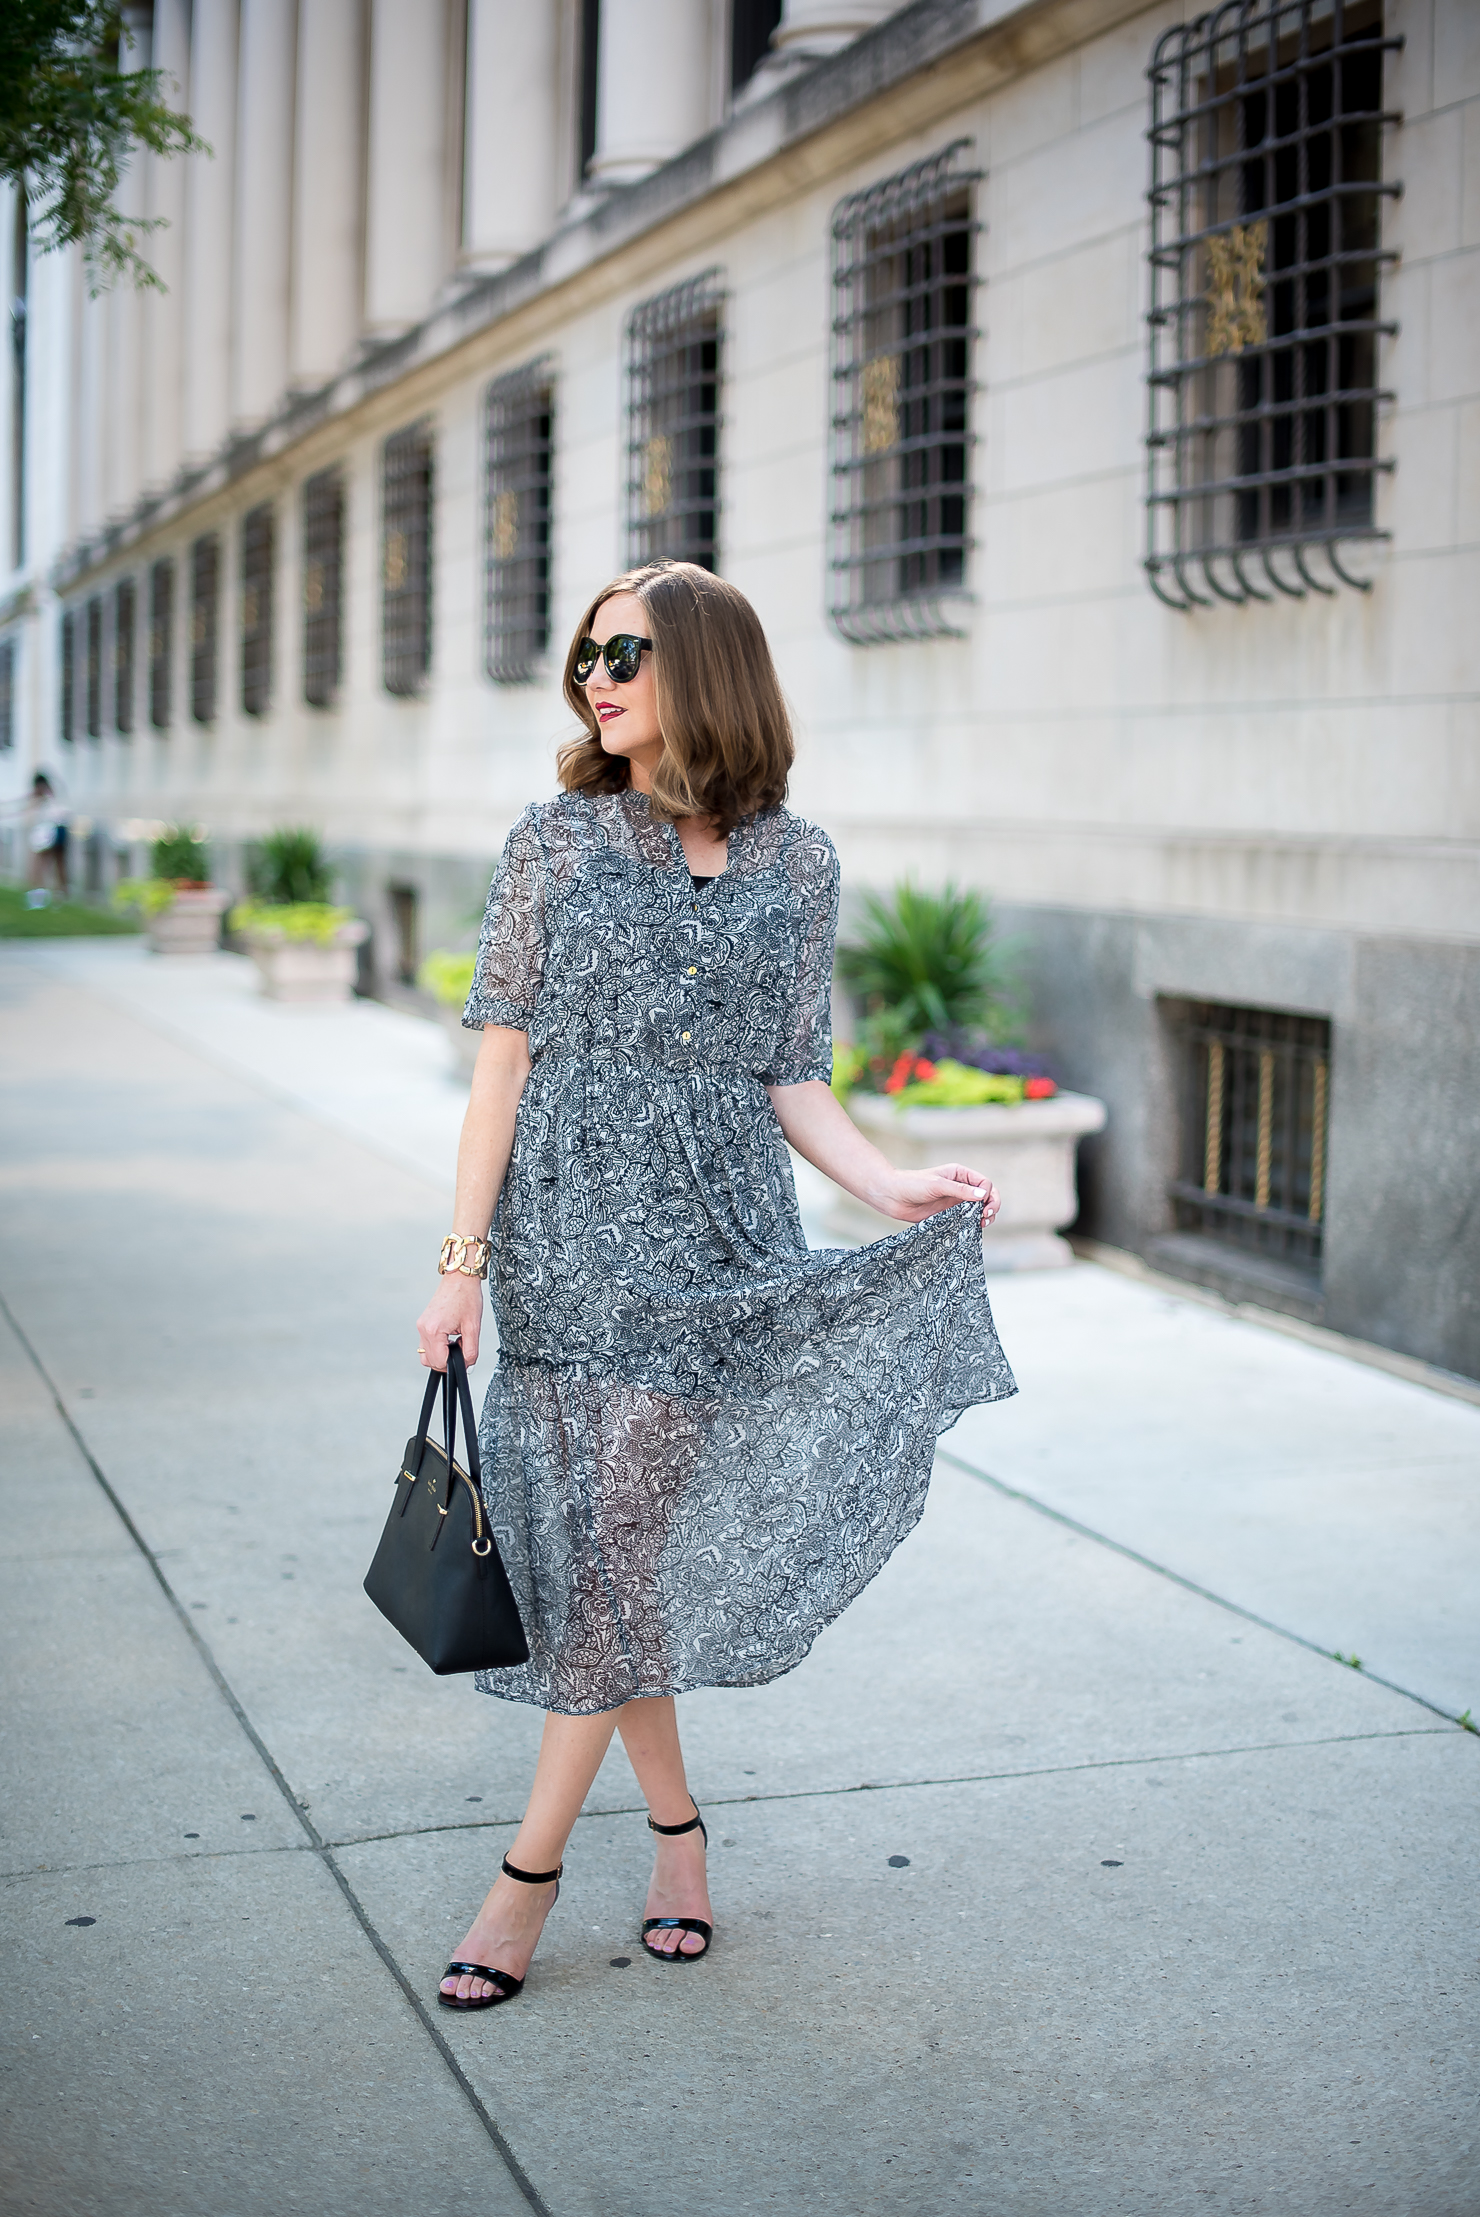 target-who-what-wear-printed-midi-dress-classic-feminine-ladylike-kate-spade-cedar-maise-gold-details-chicago-drake-hotel-10